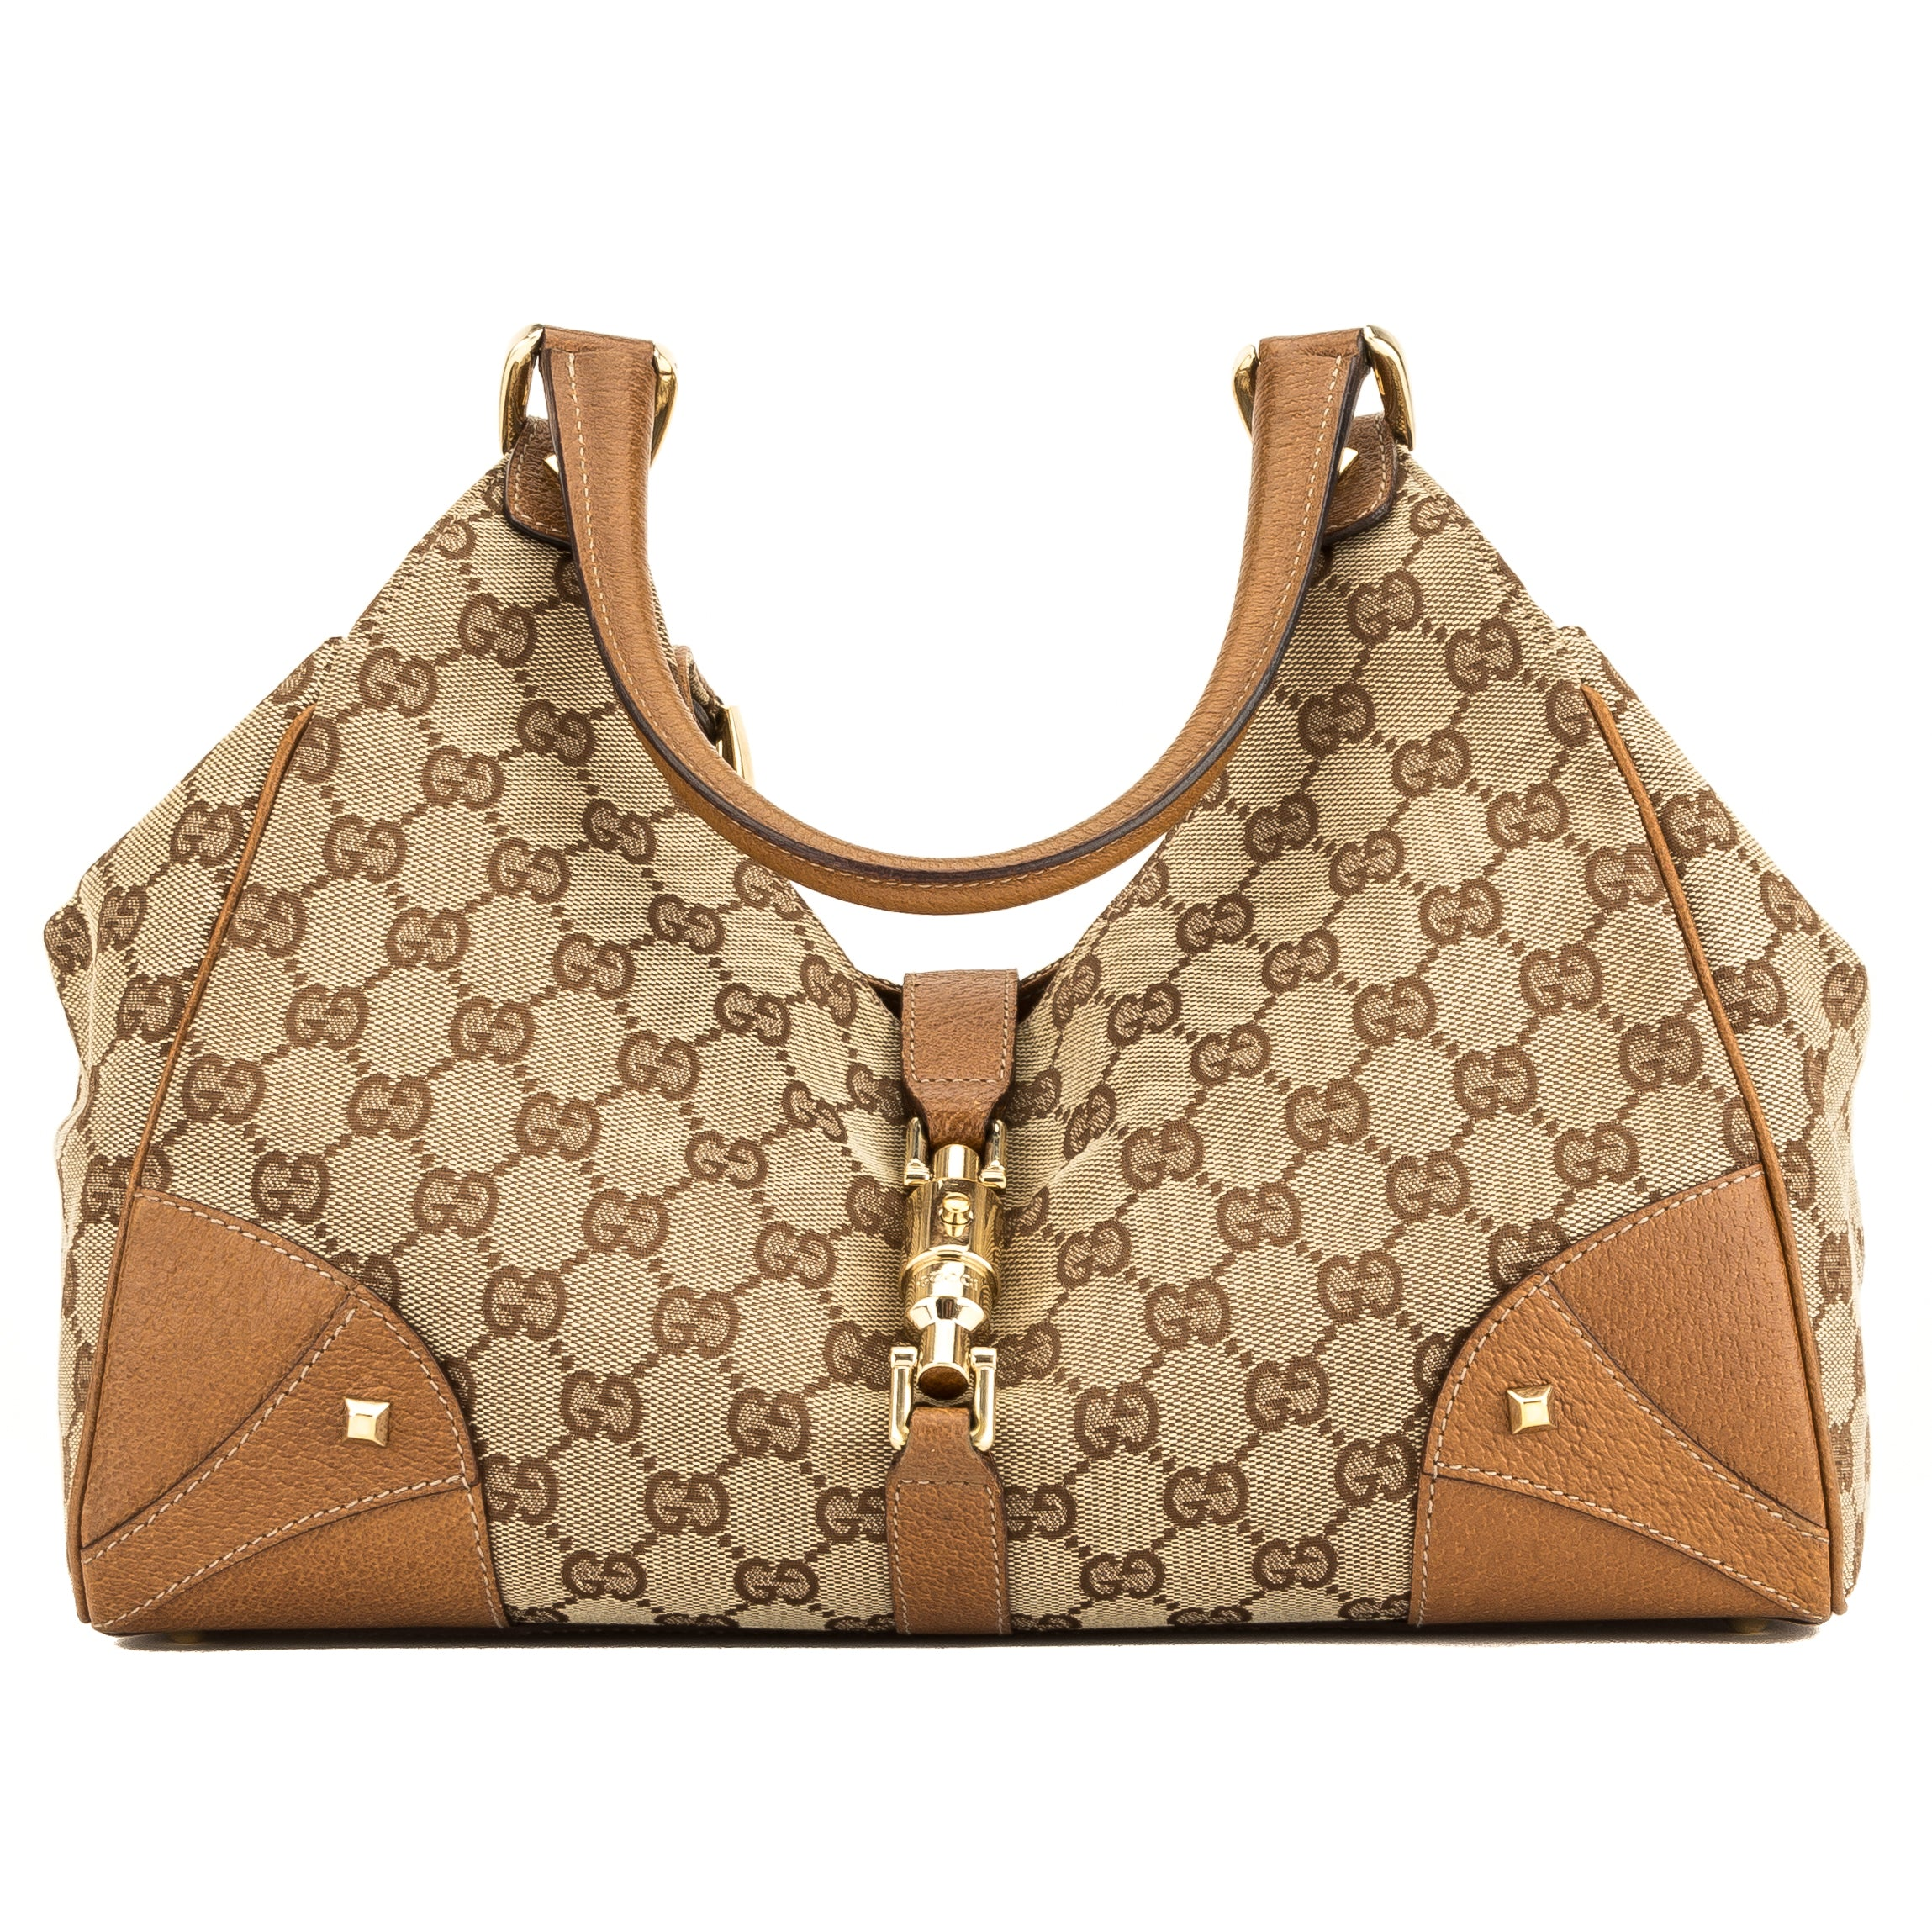 97cbe6820948 Gucci Tan Leather GG Supreme Canvas Jackie Bag (4043002) - 4043002 ...